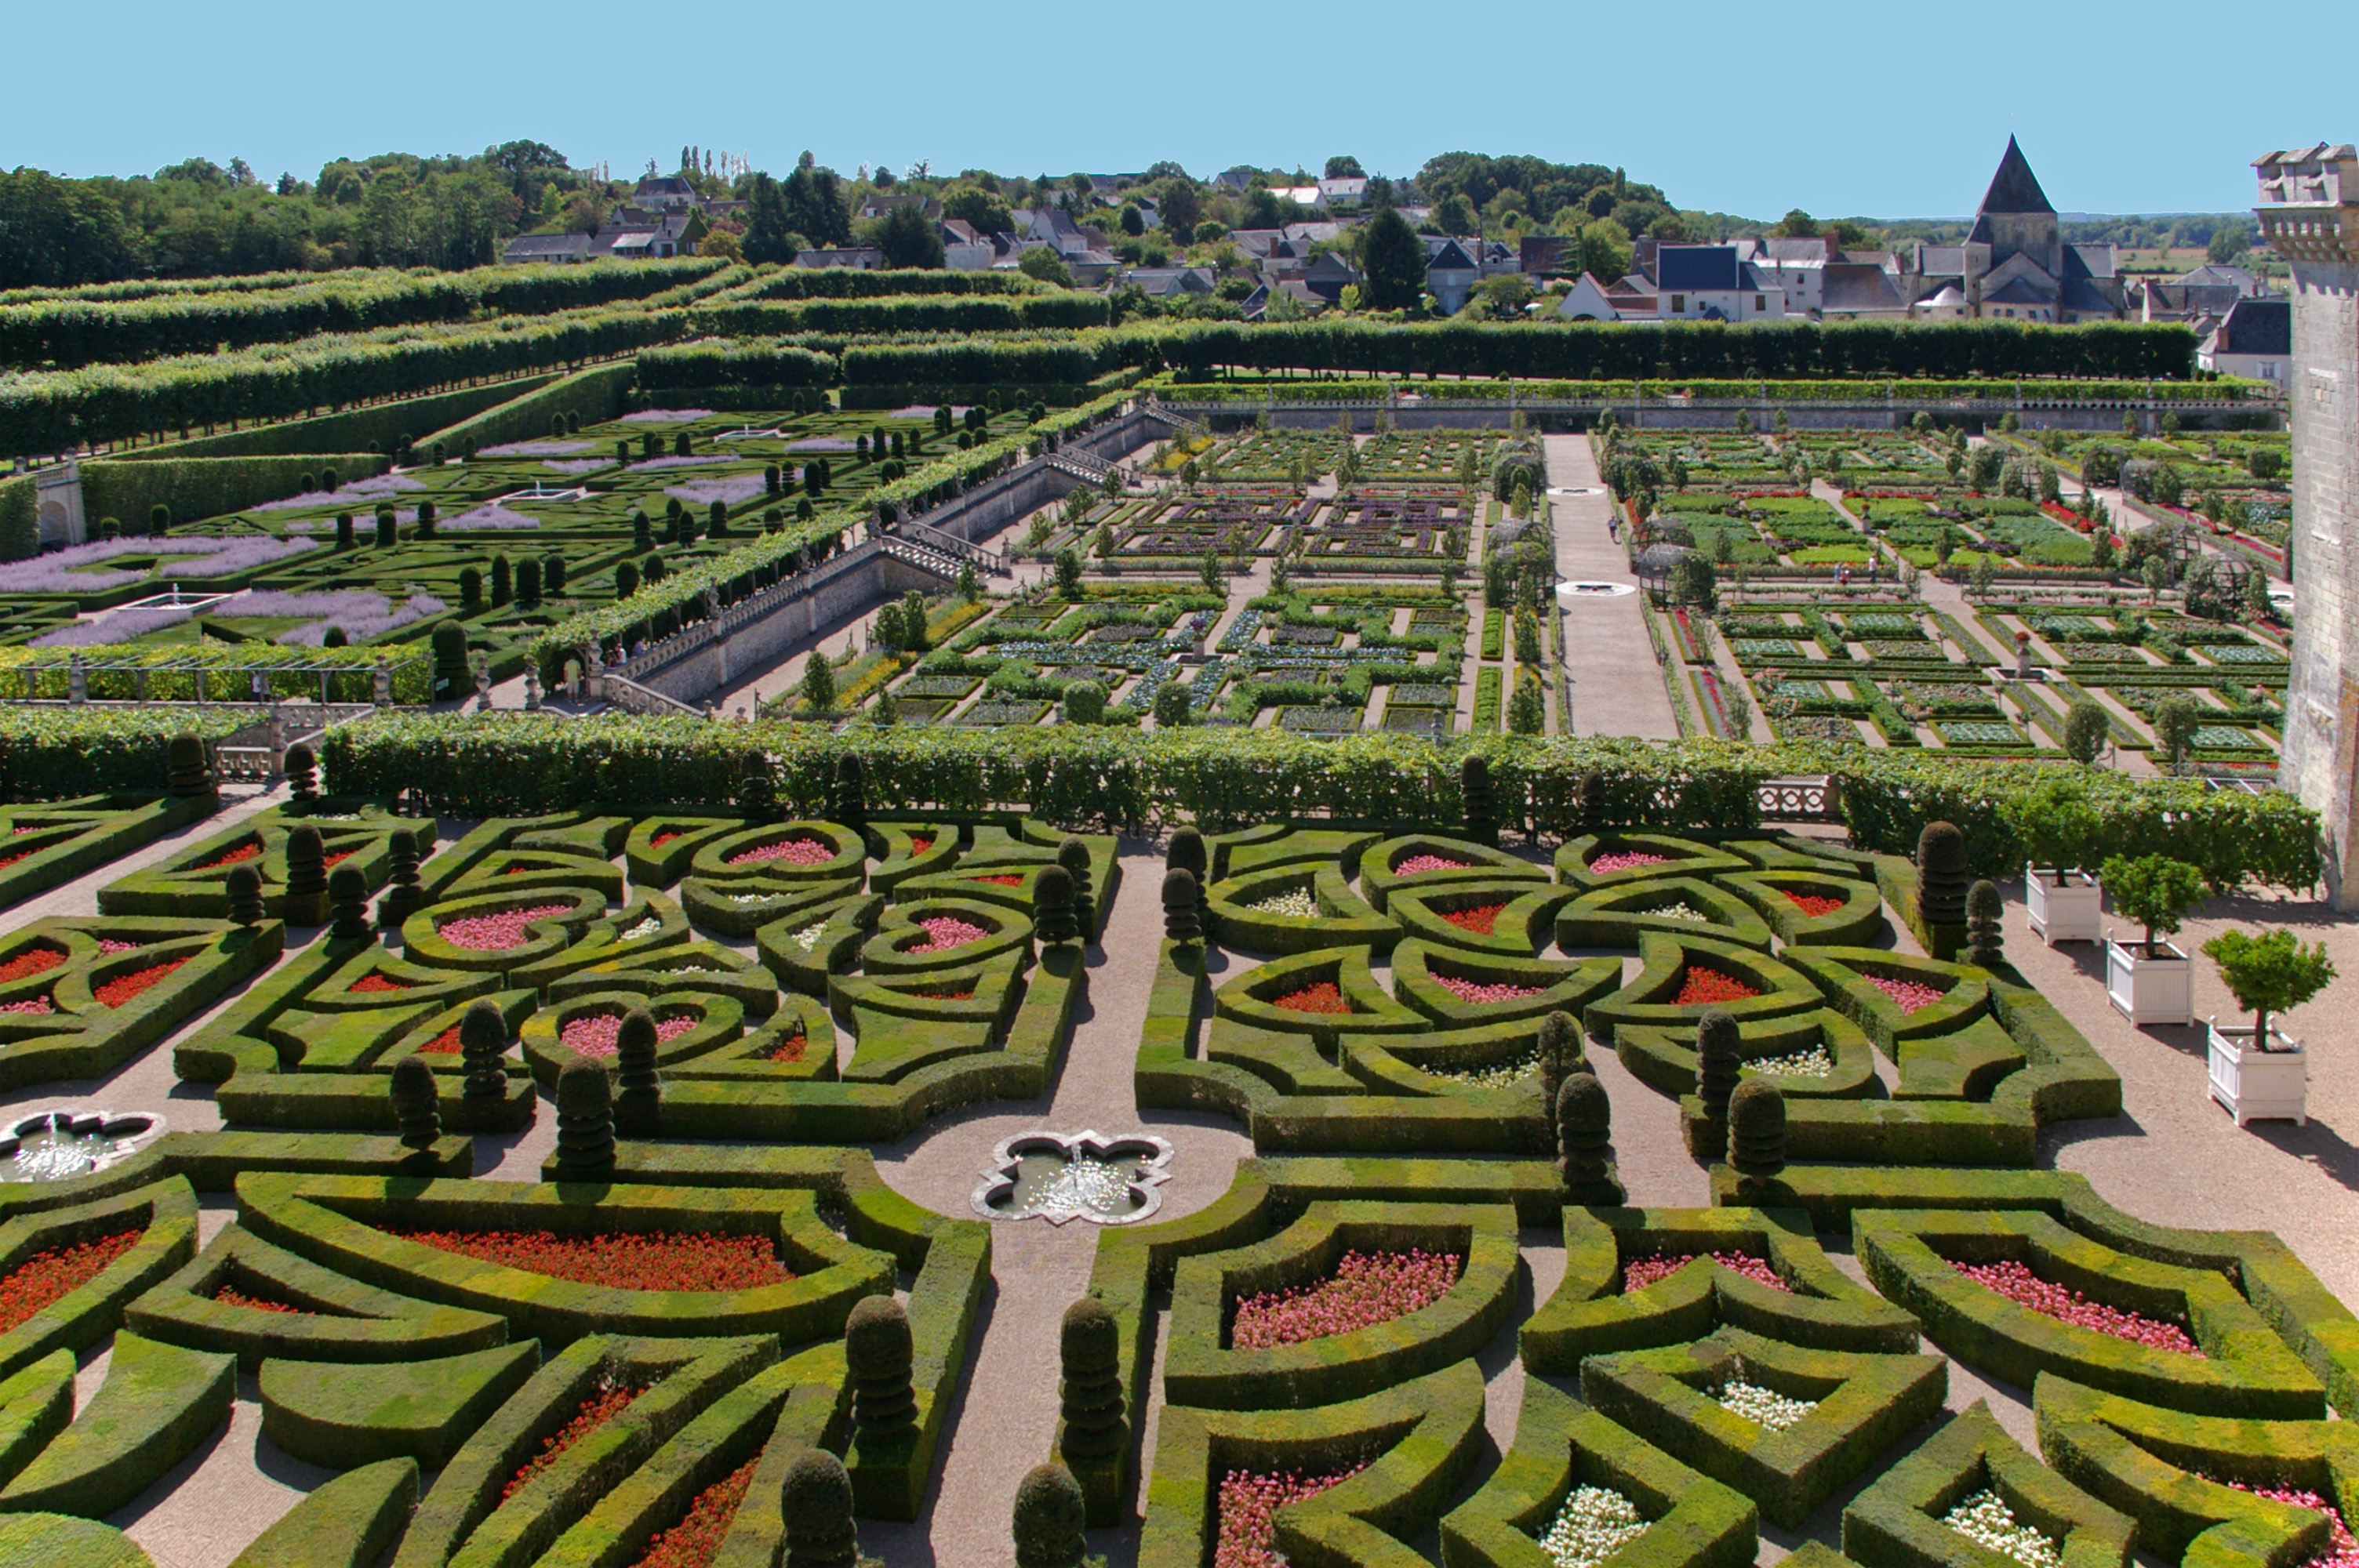 history of gardening wikipedia - European Garden Design